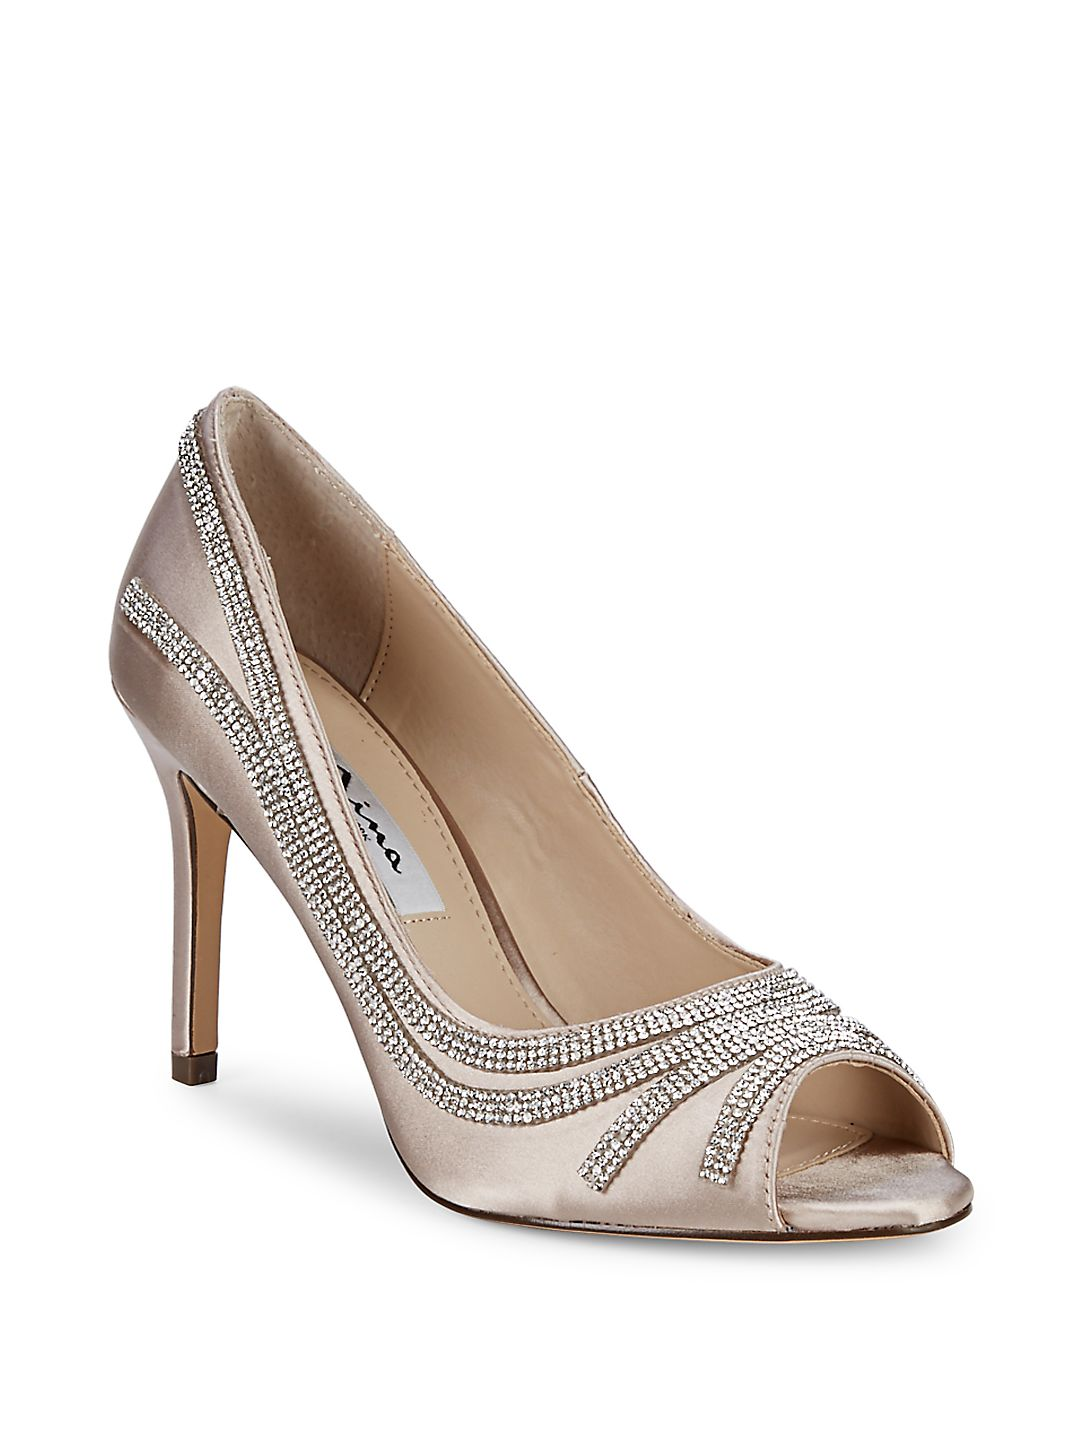 Rylinn Embellished Peep-Toe Pumps